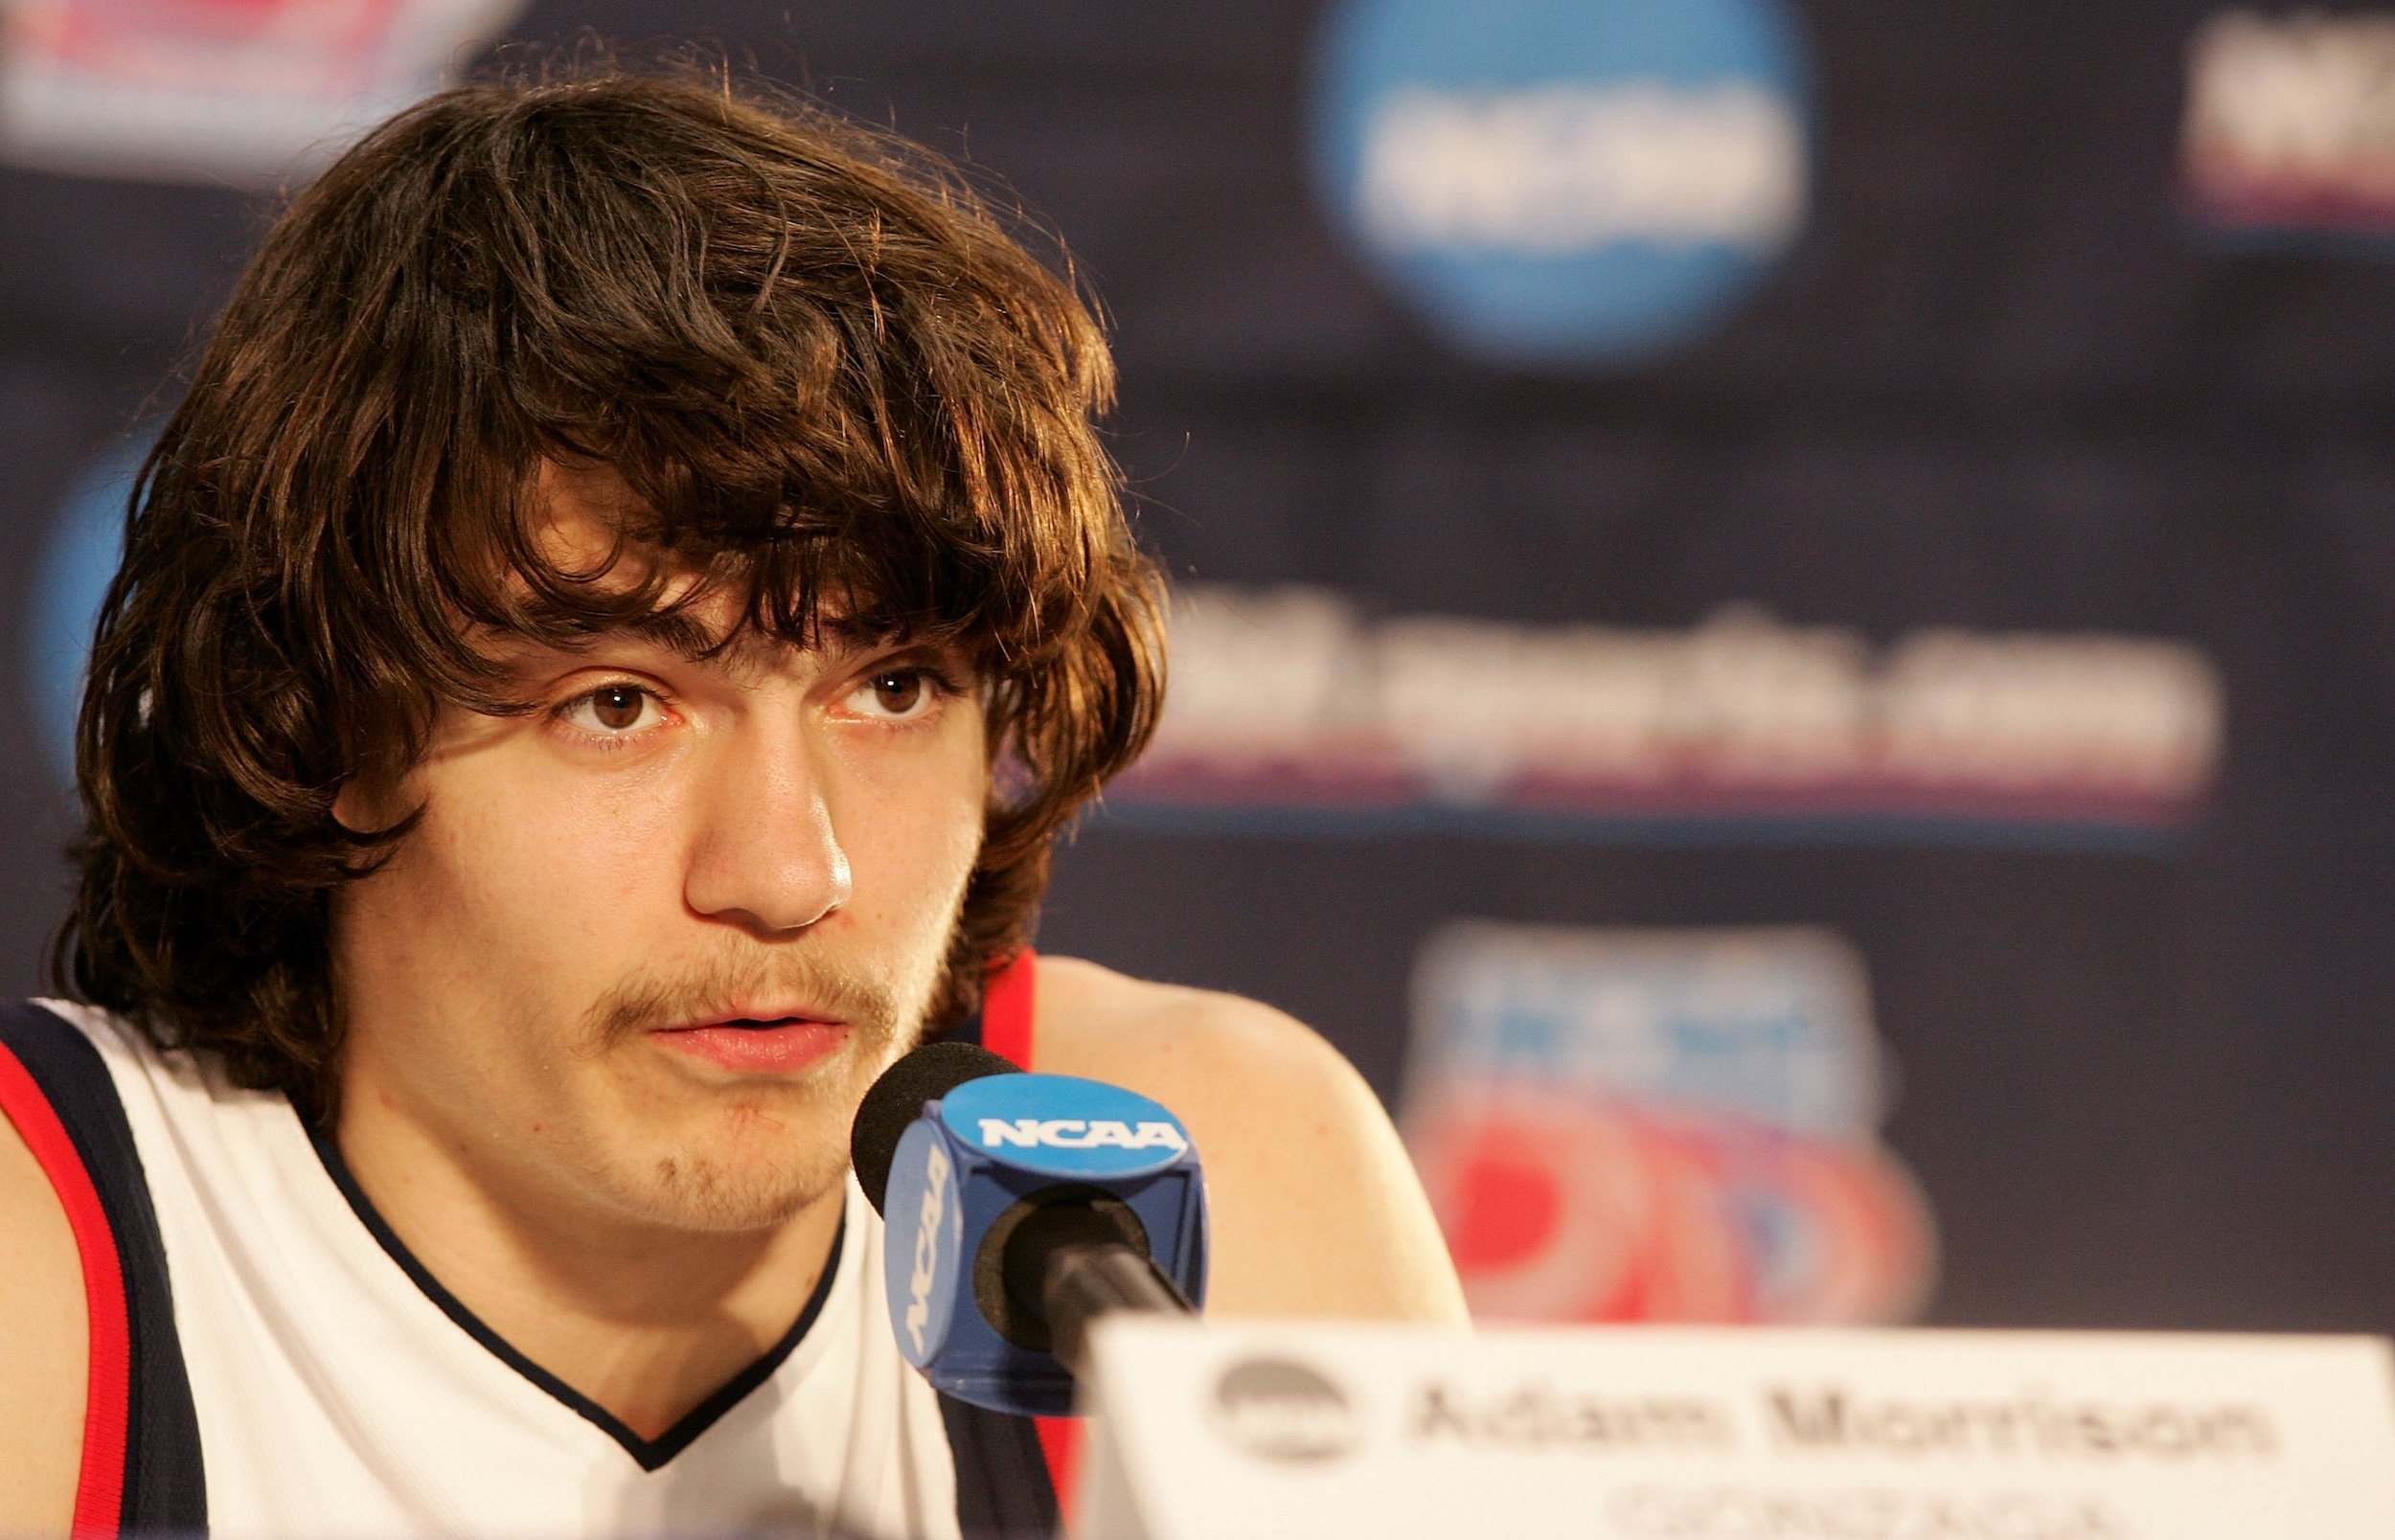 According to Jared Dudley, Adam Morrison had some poor personal hygiene practices.